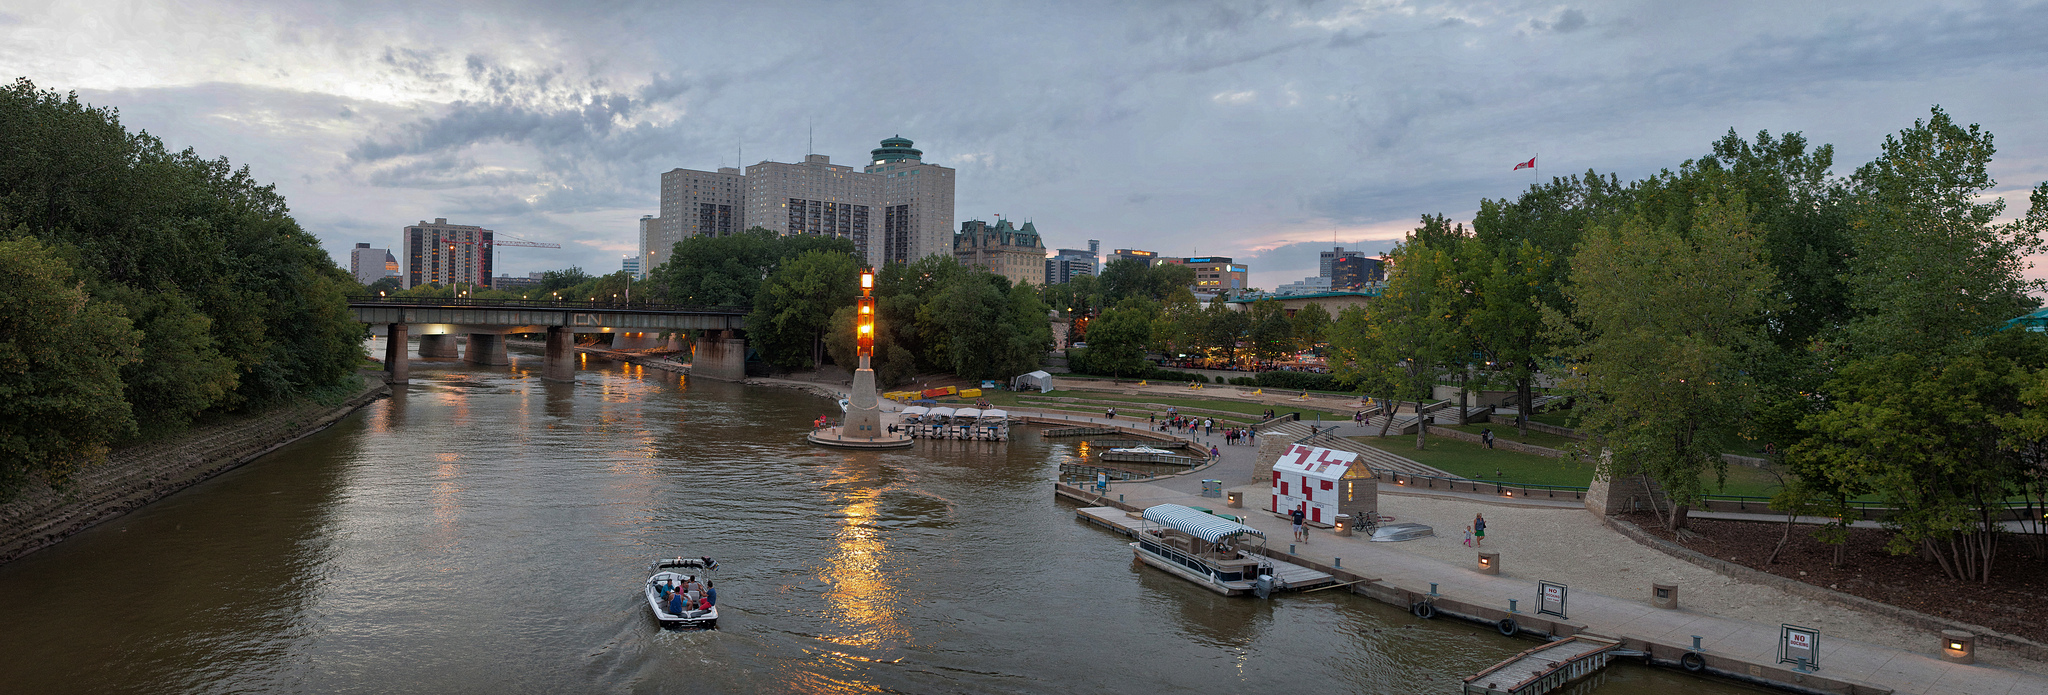 The Forks, Winnipeg, Manitoba